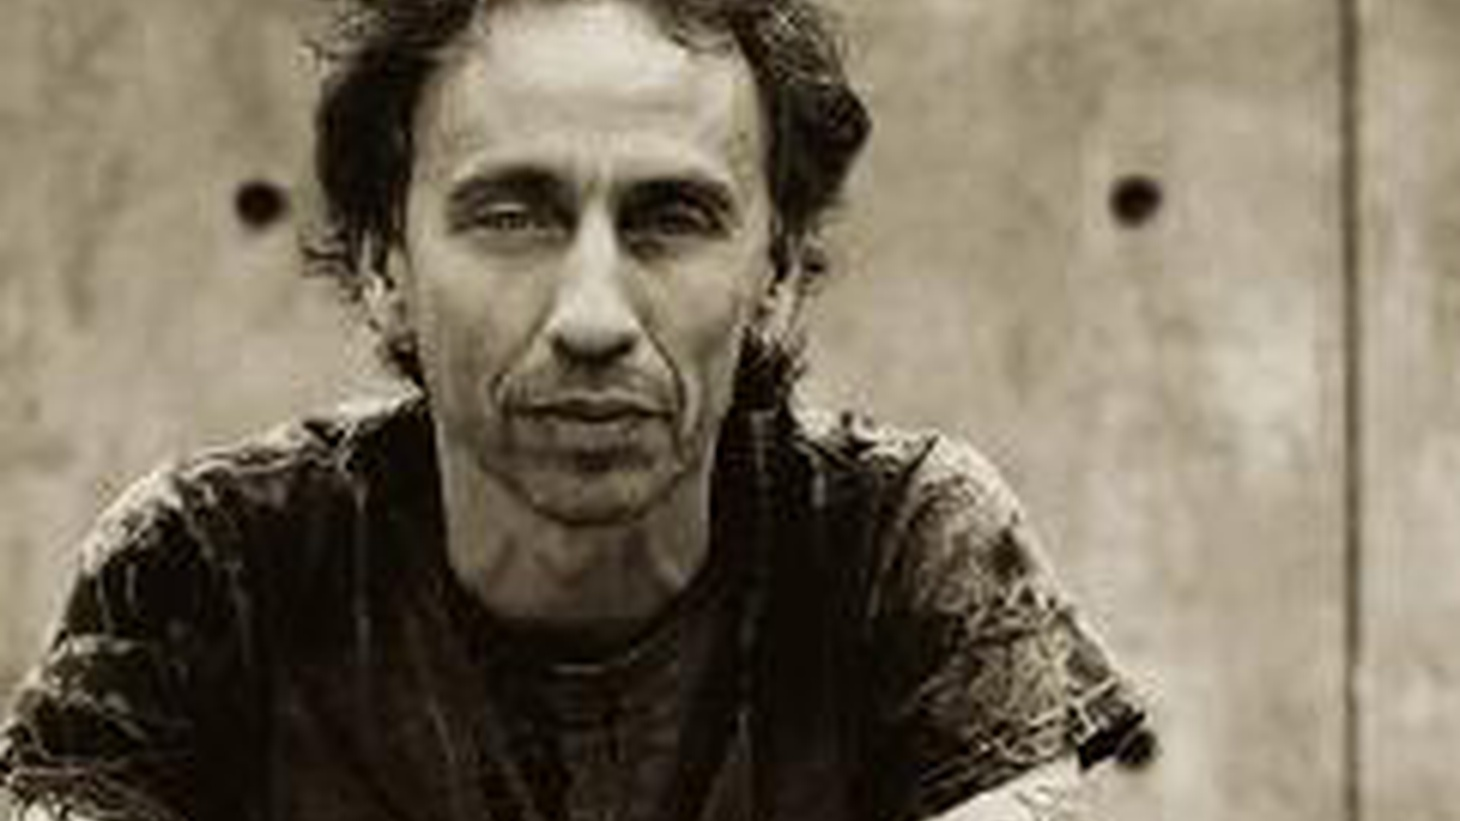 Tony-award winner Ron Silver currently starring in a one-man show, Bill Graham Presents, joins Morning Becomes Eclectic as guest deejay in the 11 o-clock hour.